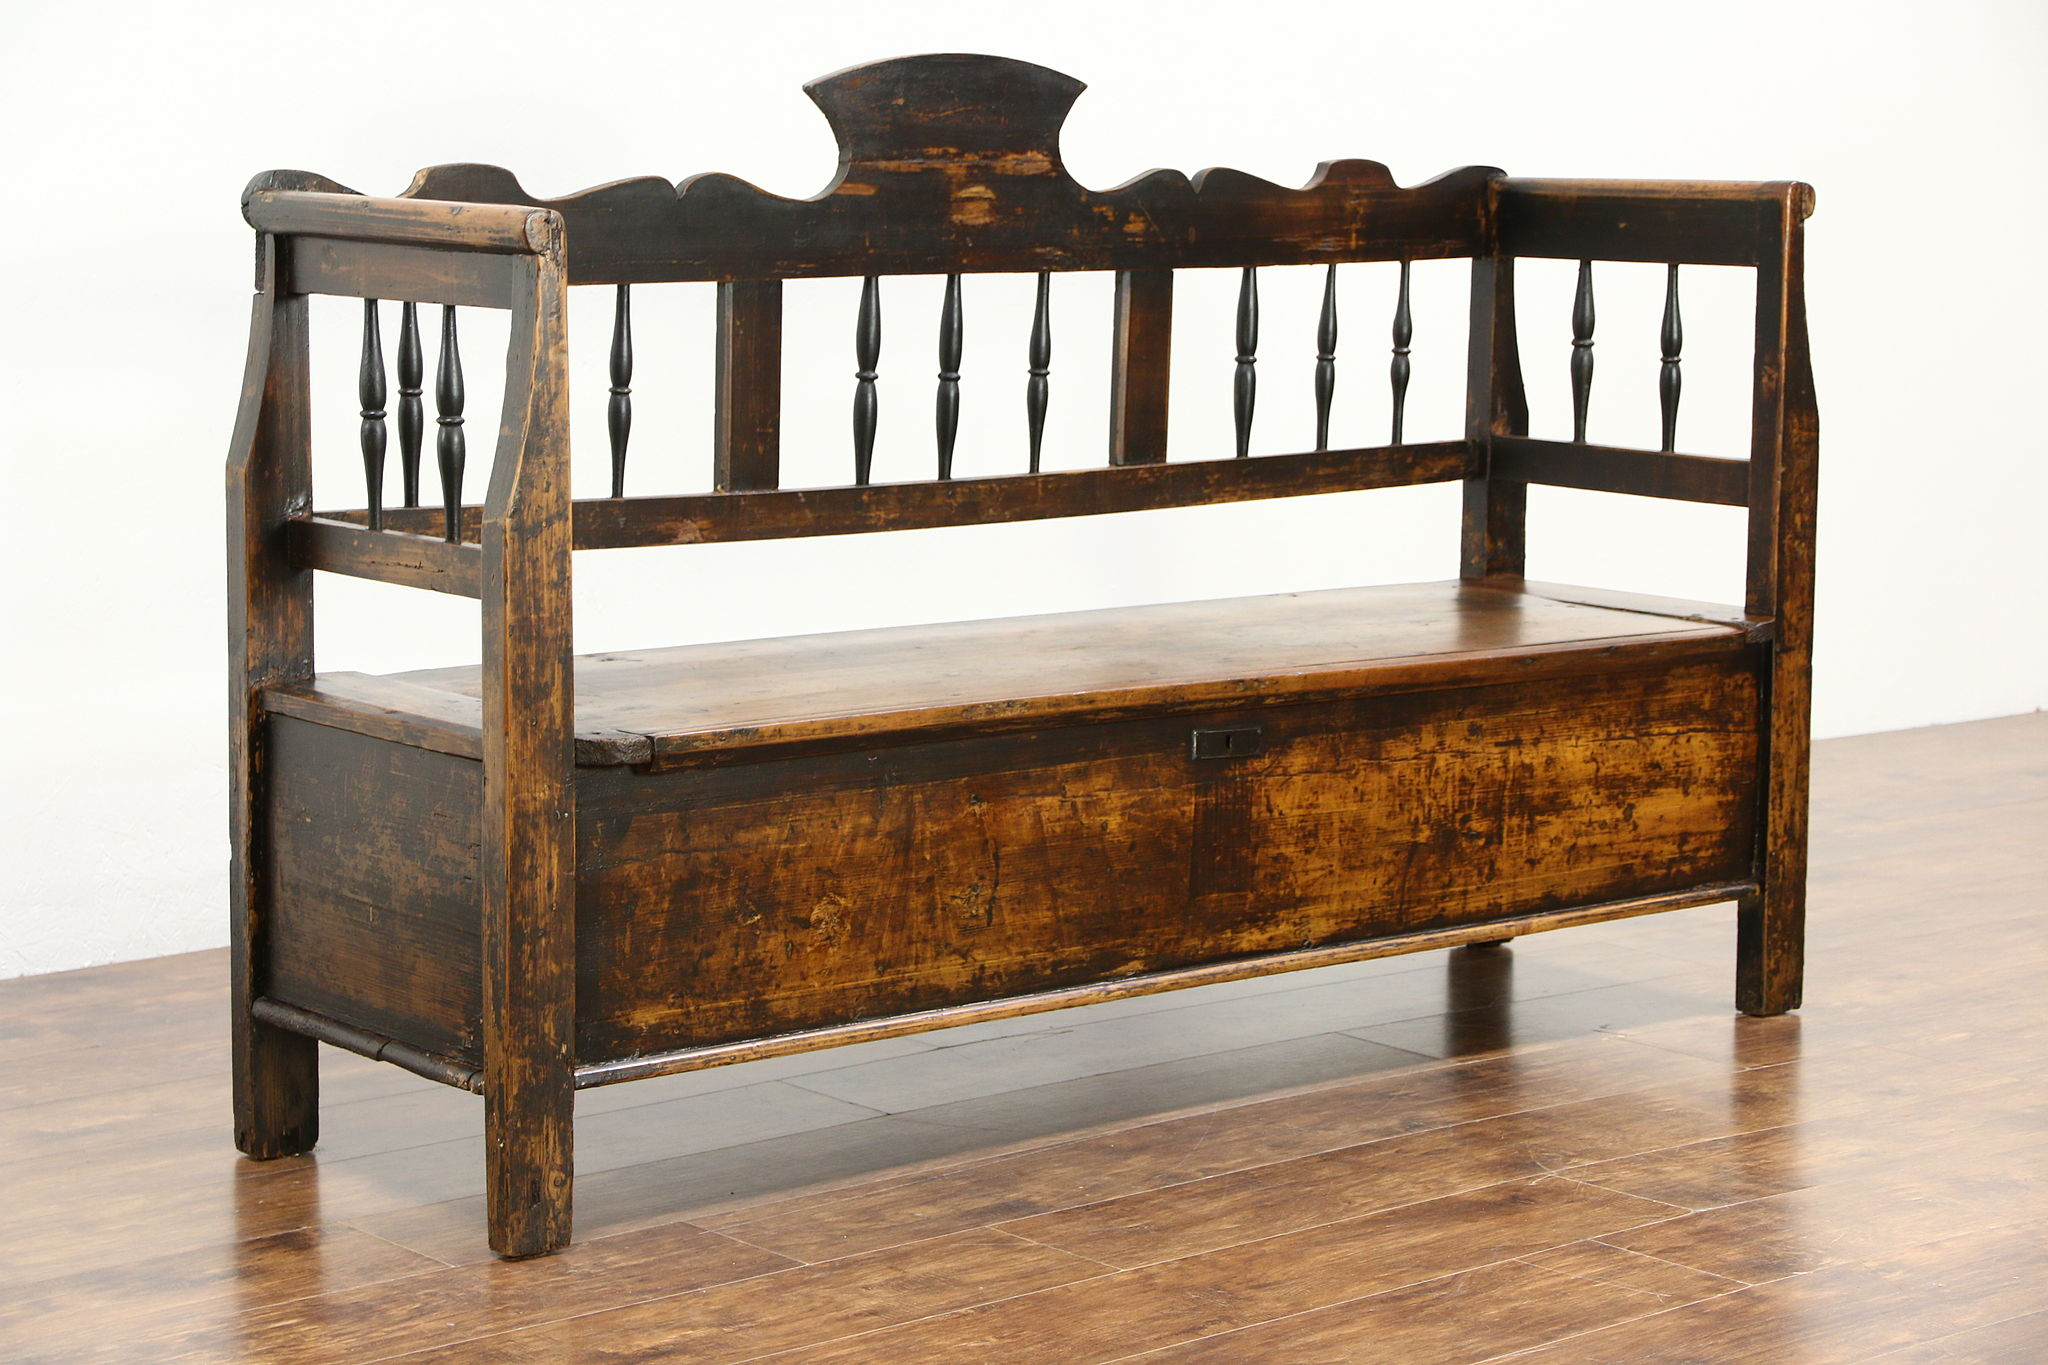 SOLD - Country Pine 1840 Antique Primitive Bench, Settee or Settle ...